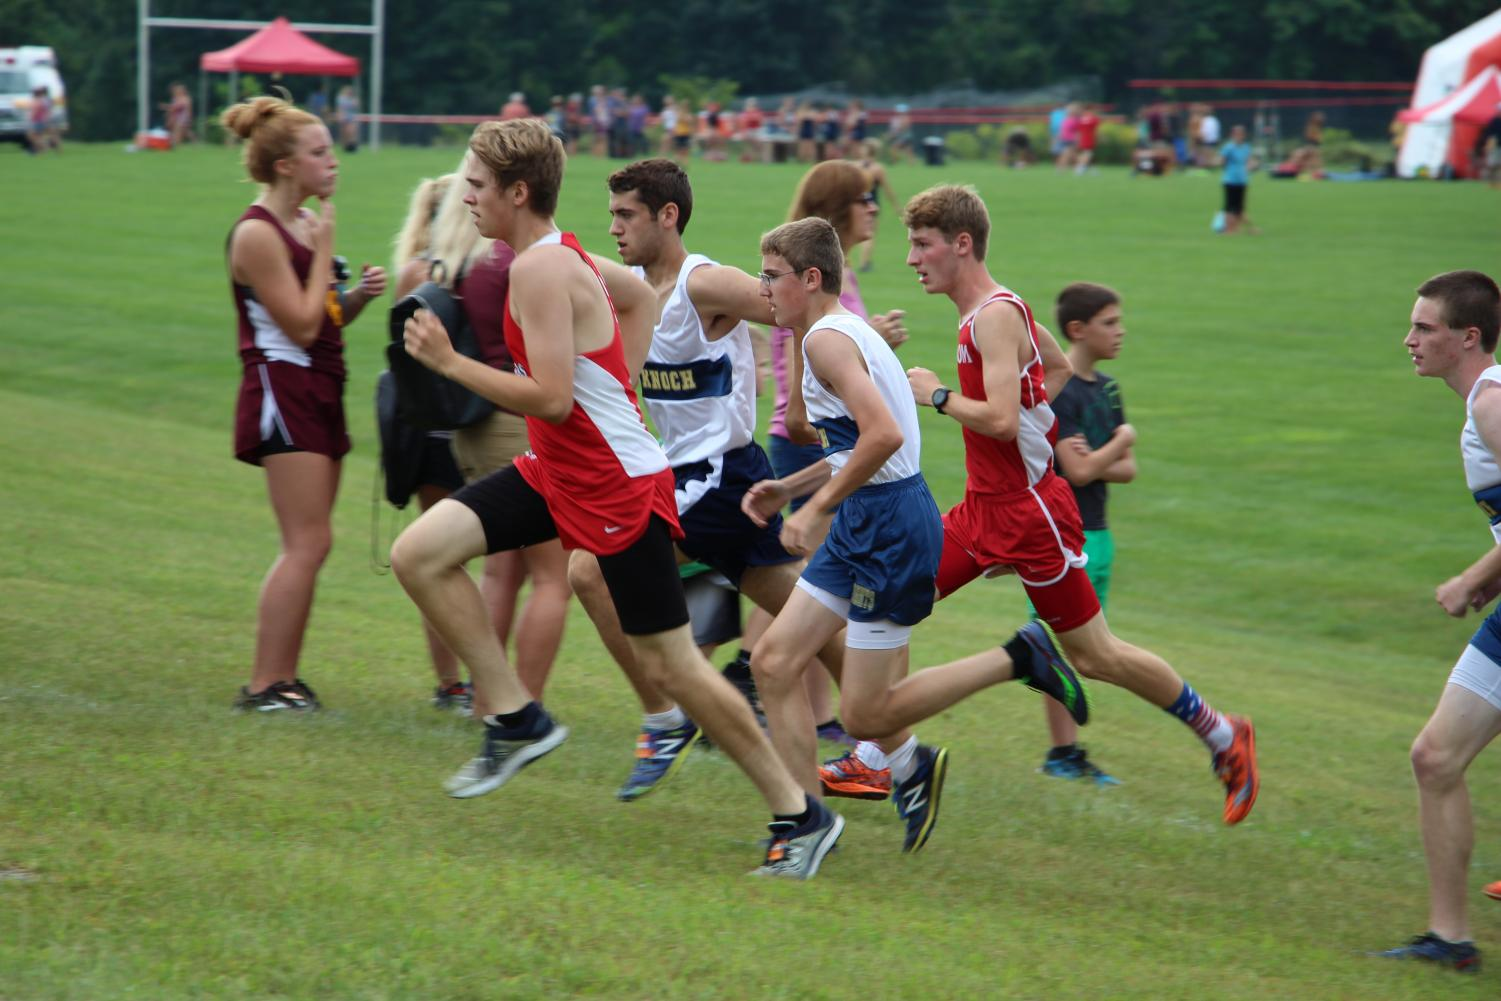 Junior Adam Hessler gains on competitors from opposing schools as he approaches the finish line.